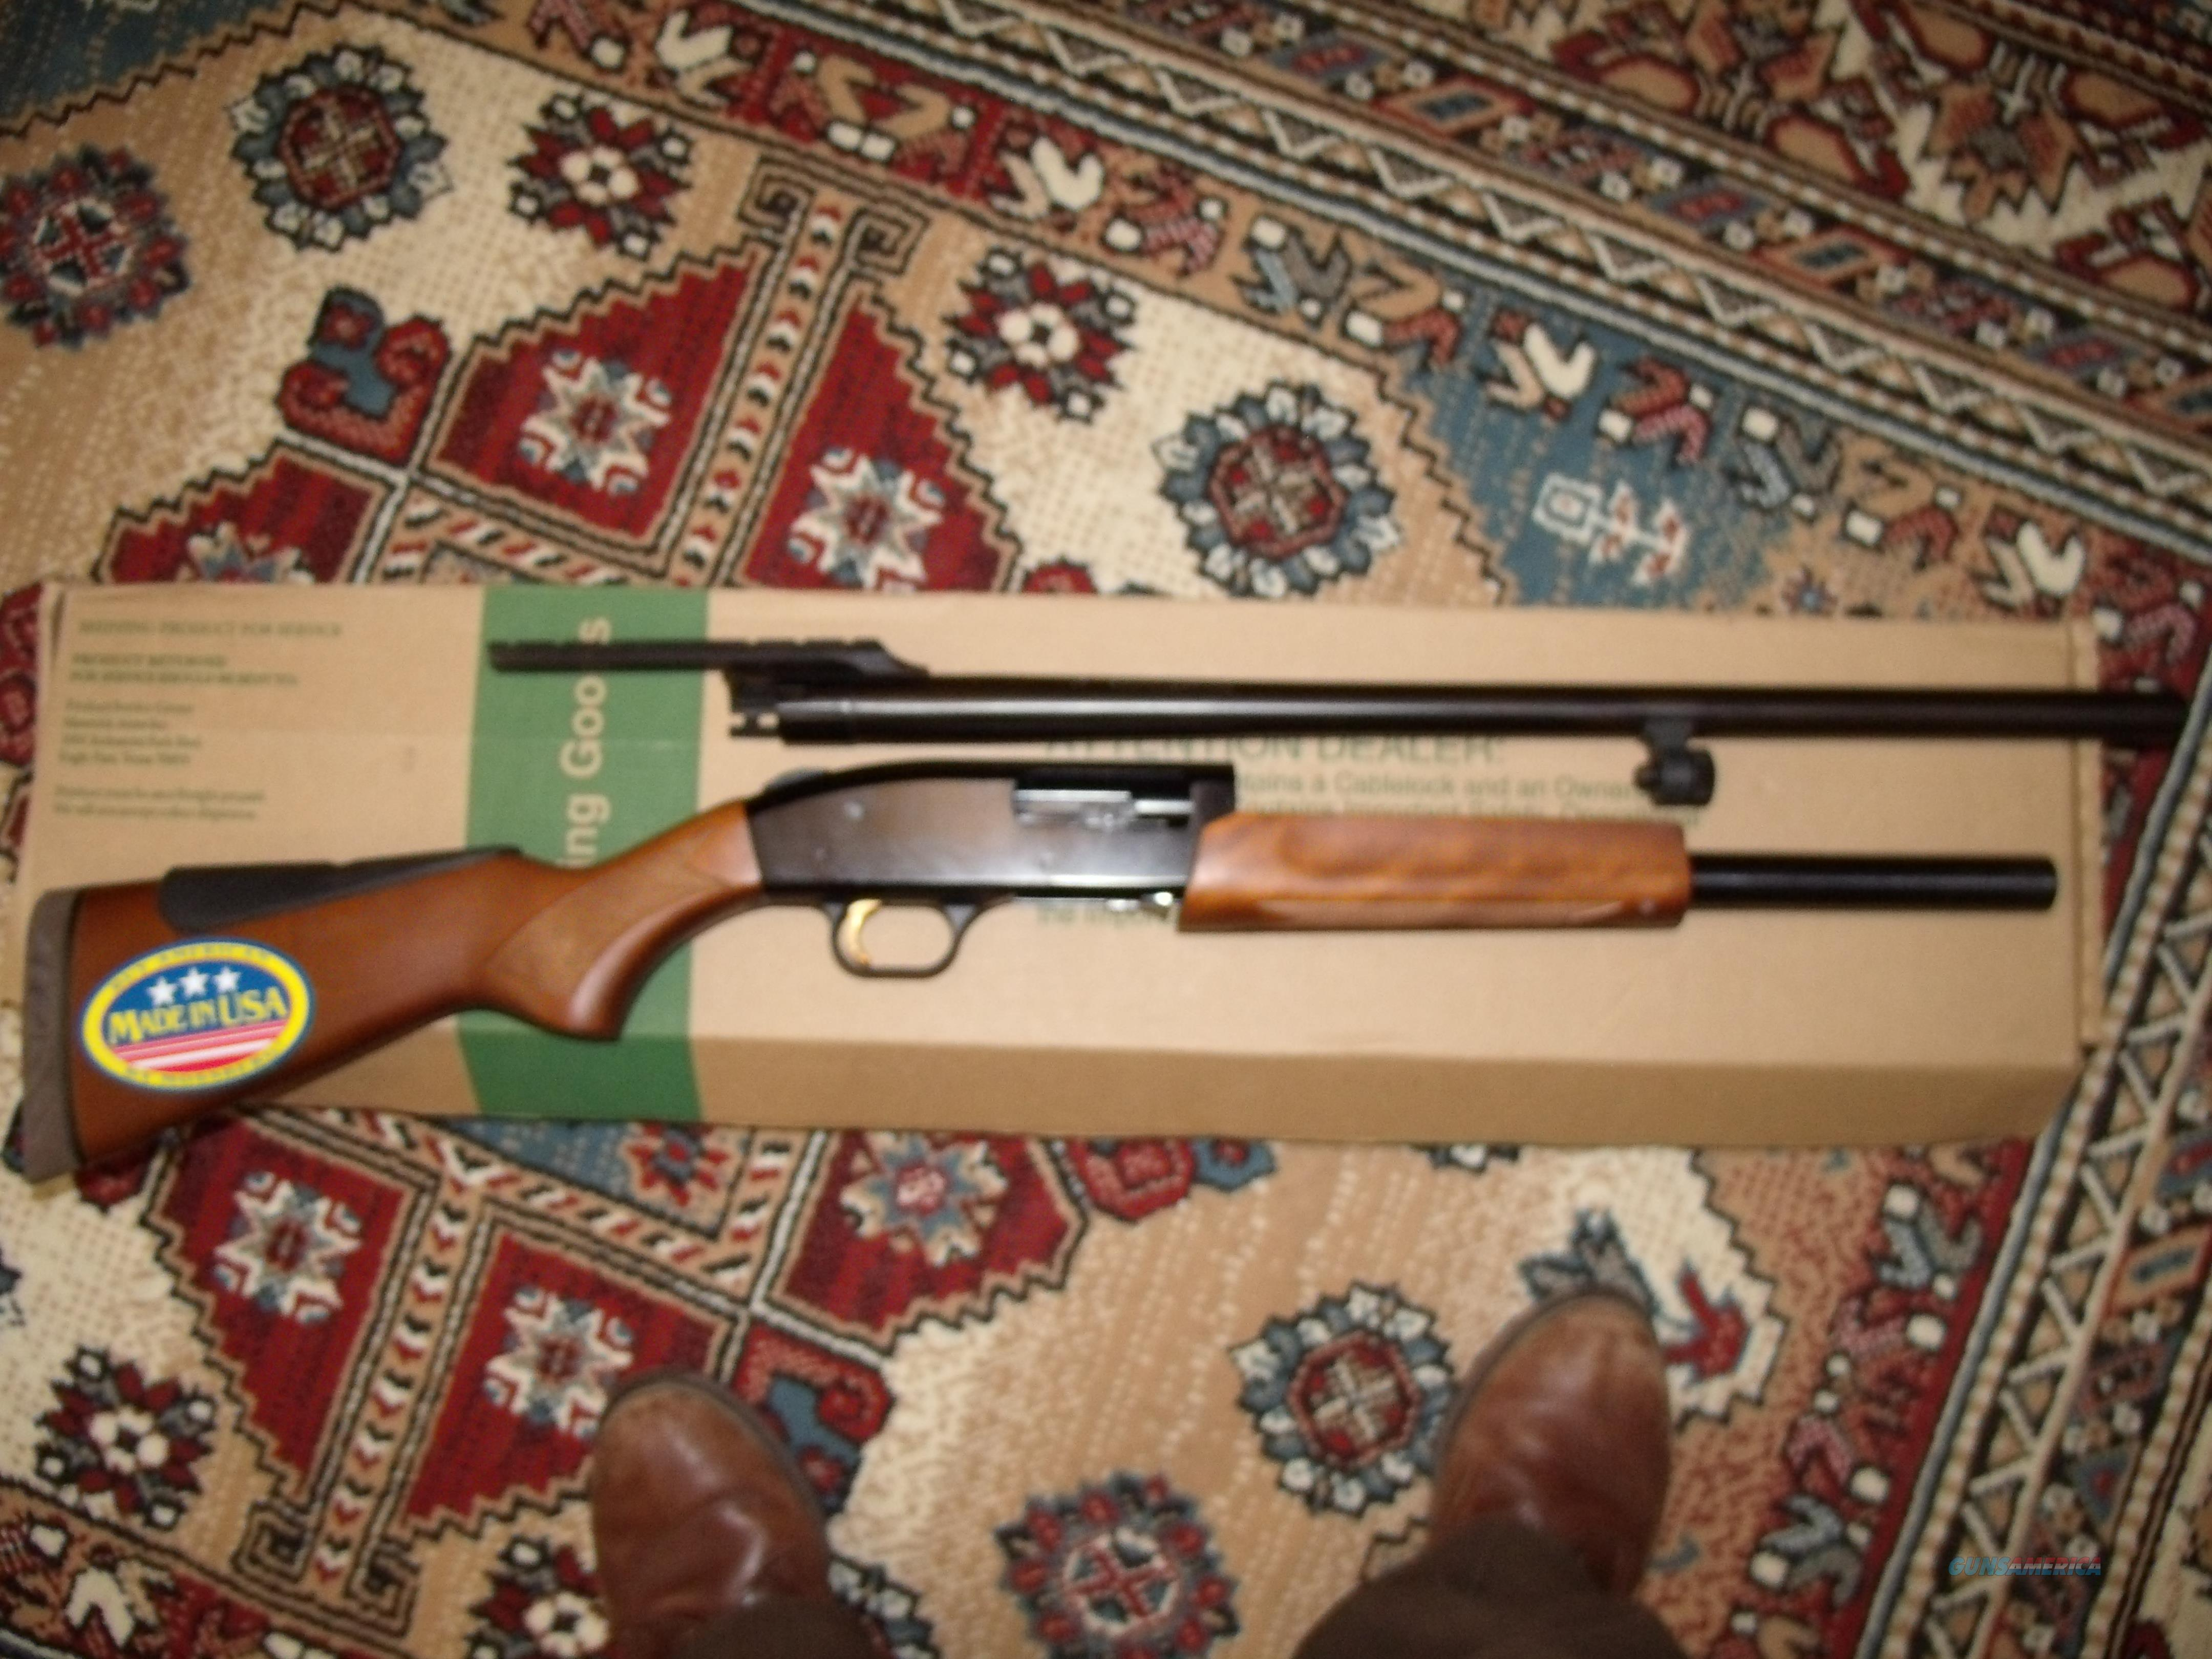 MOSSBERG 500 CROWN GRADE TROPHY SLUGSTER 12G  Guns > Shotguns > Mossberg Shotguns > Pump > Sporting